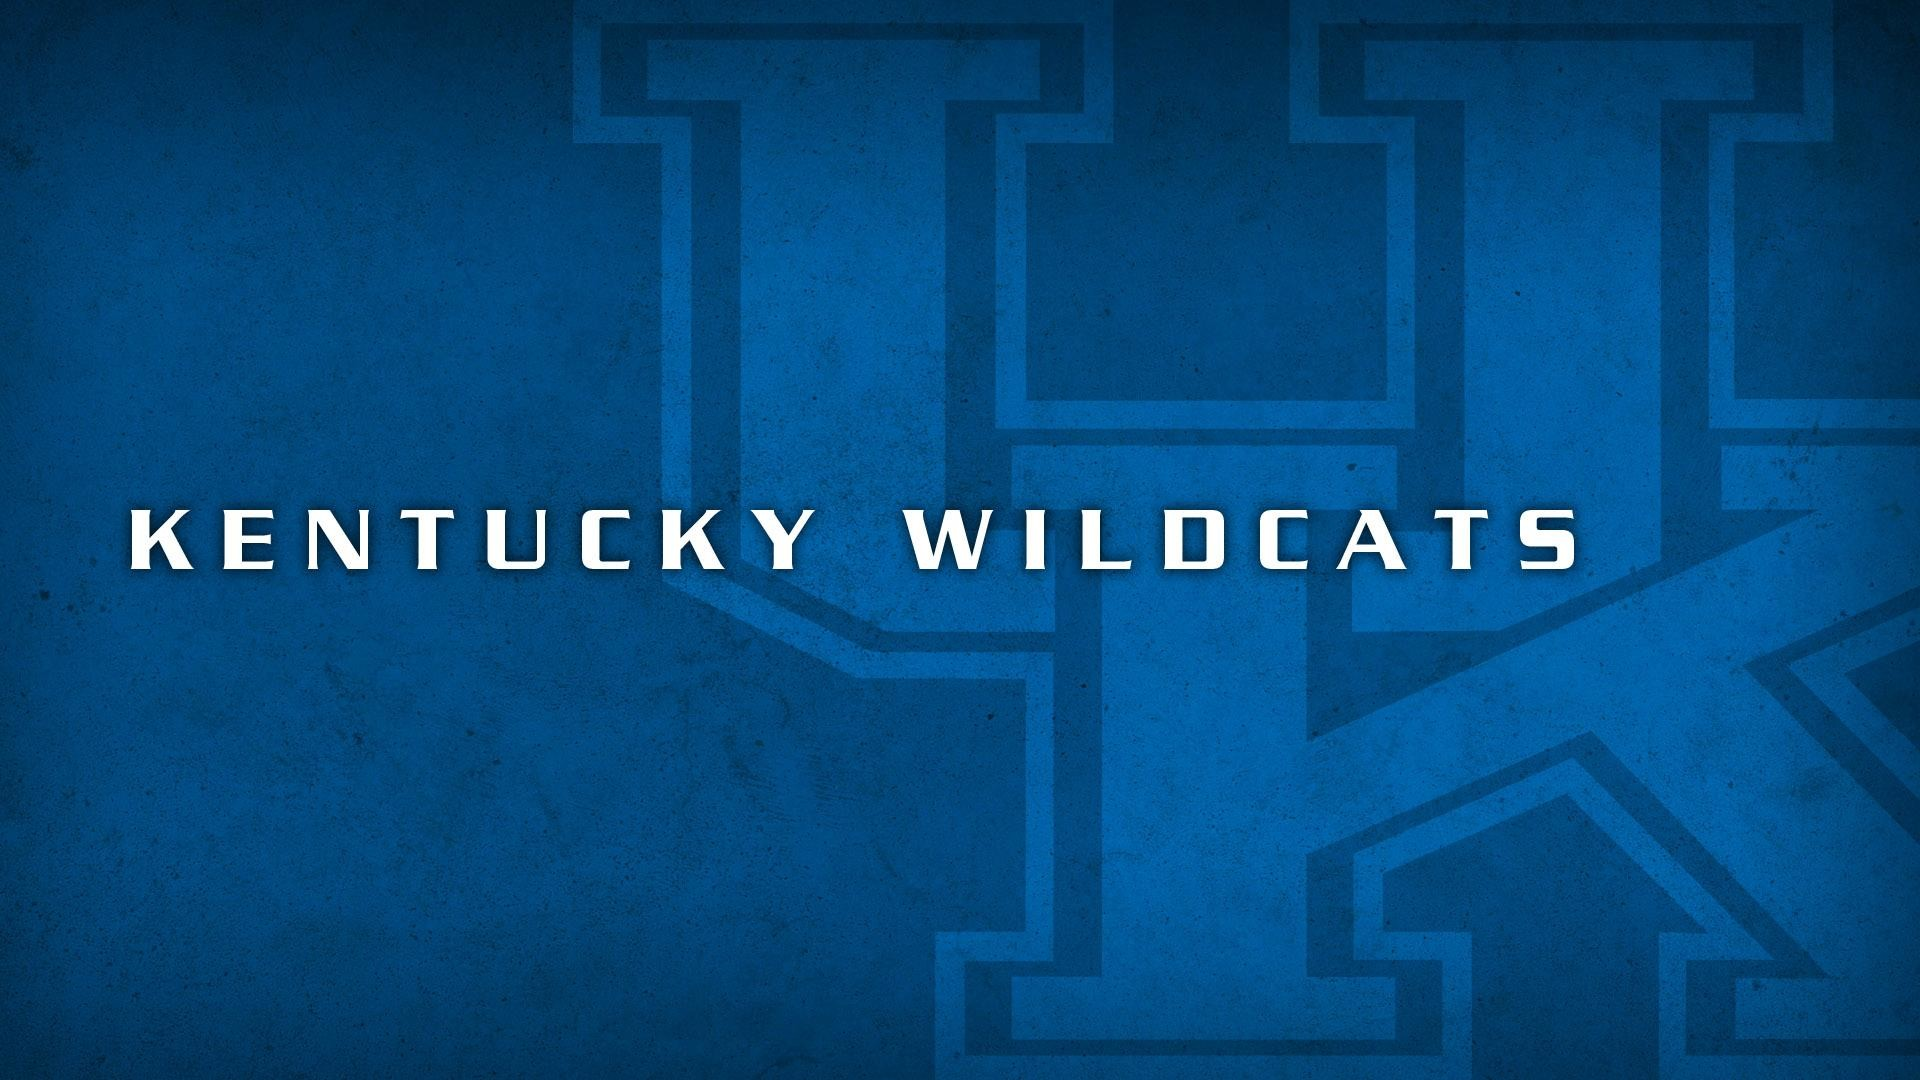 1920x1080 Kentucky Wildcats